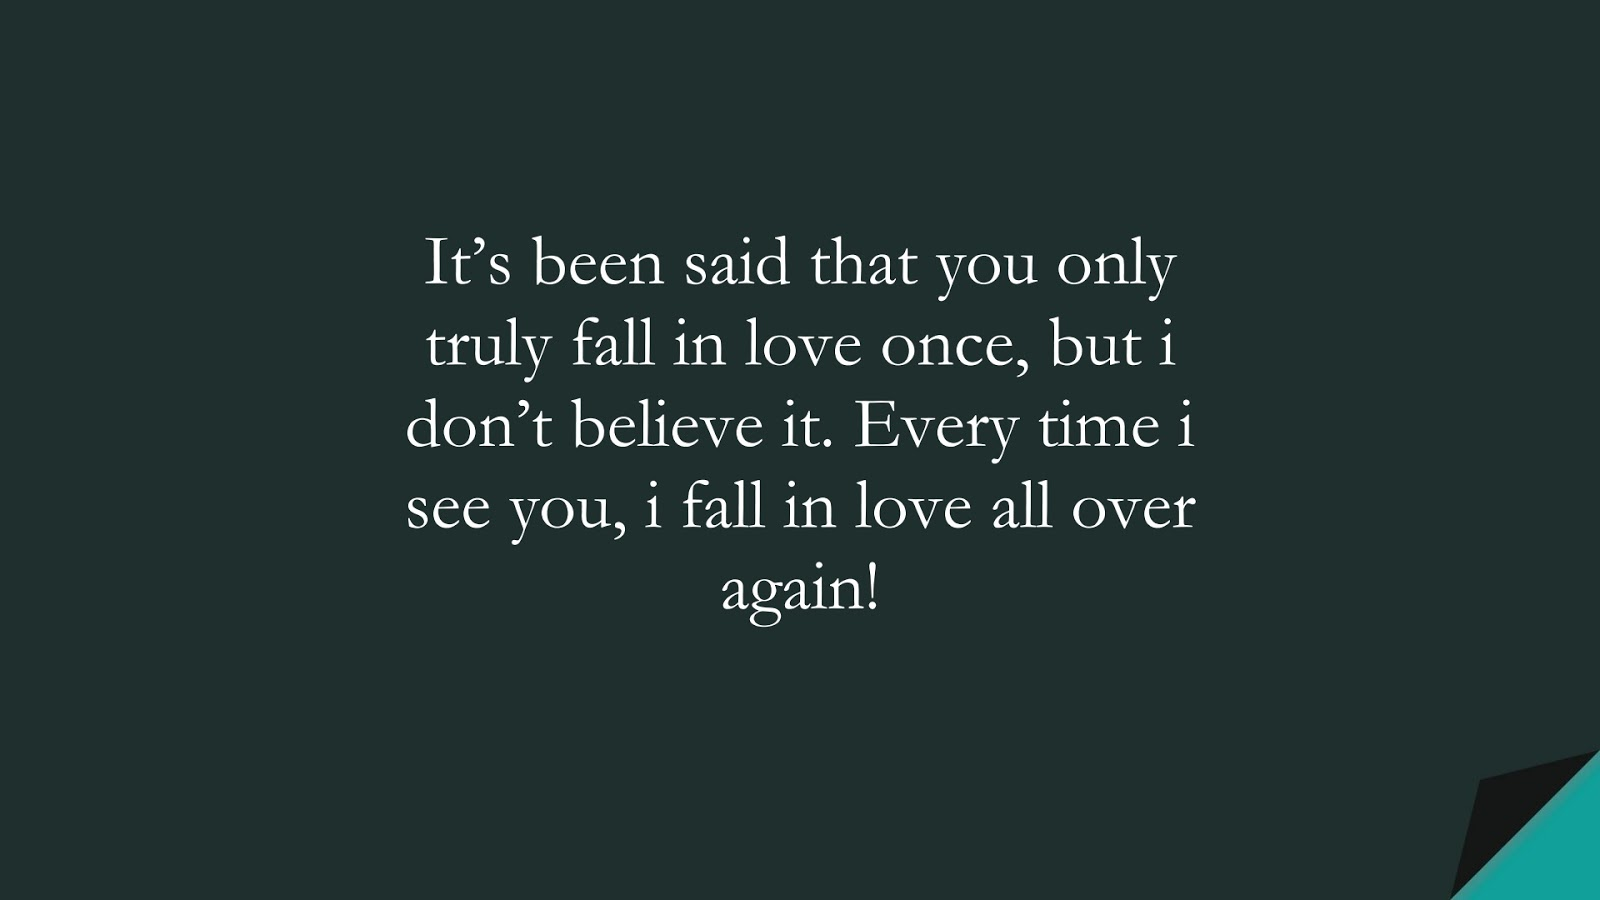 It's been said that you only truly fall in love once, but i don't believe it. Every time i see you, i fall in love all over again!FALSE